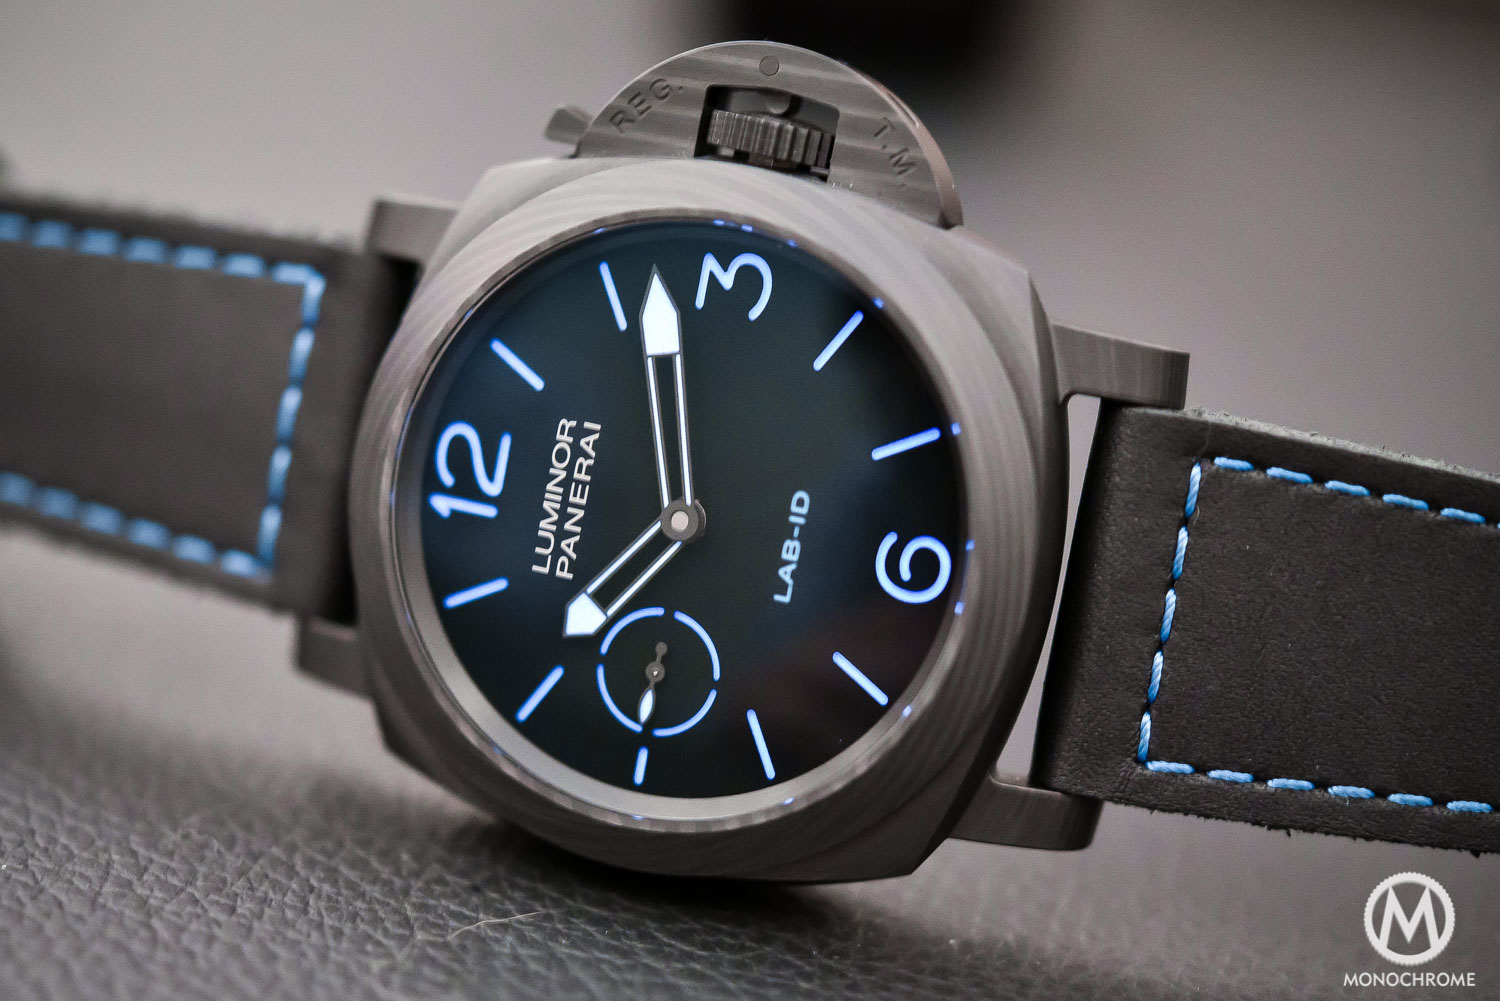 Image result for Panerai PM700 concept watch